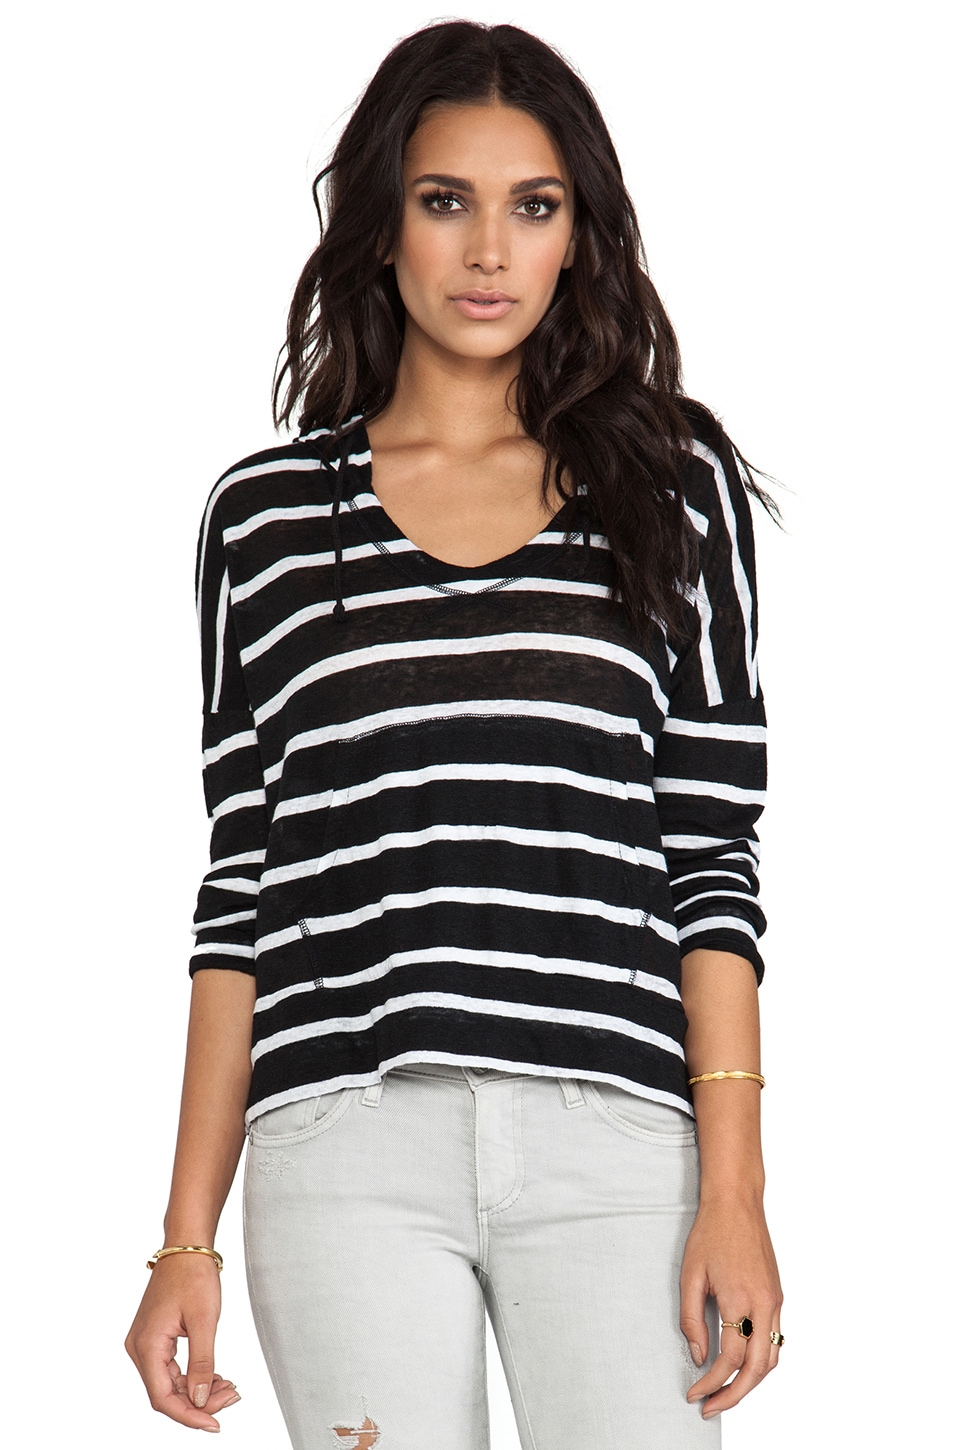 Bobi Linen Stripe Sweatshirt in Black & White